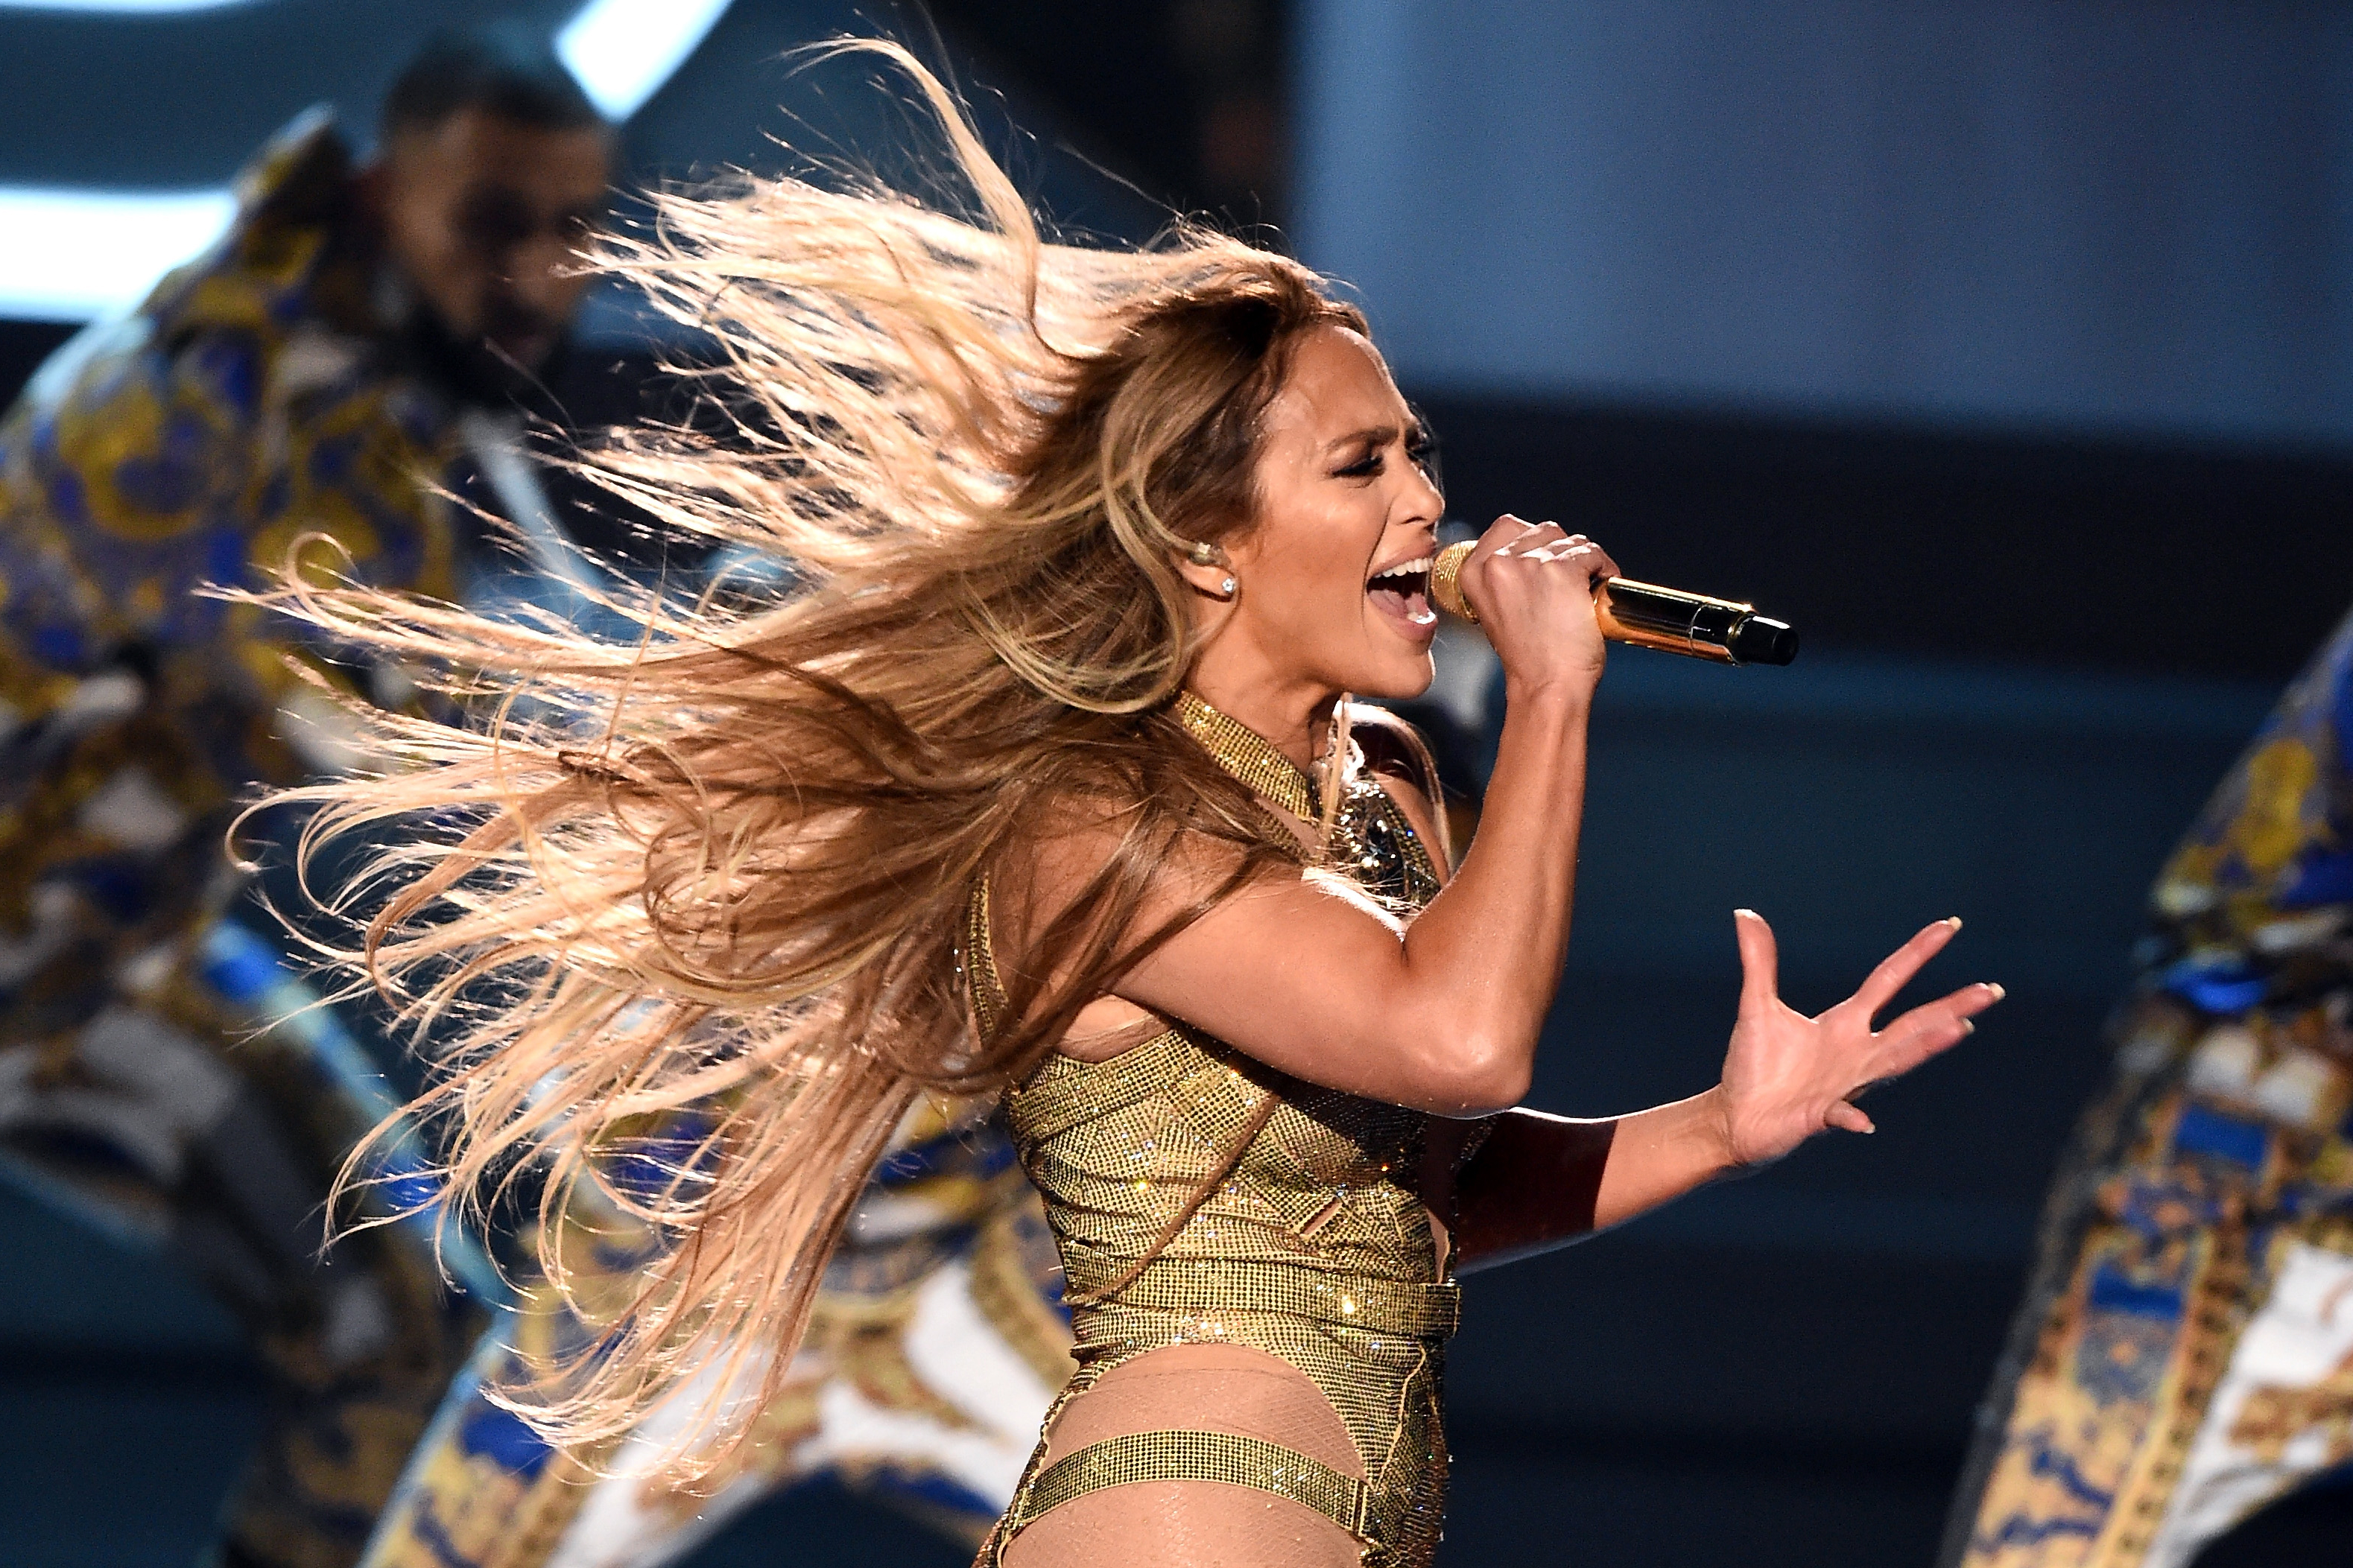 a2d50f4047a3 NEW YORK, NY - AUGUST 20: Jennifer Lopez performs onstage during the 2018  MTV